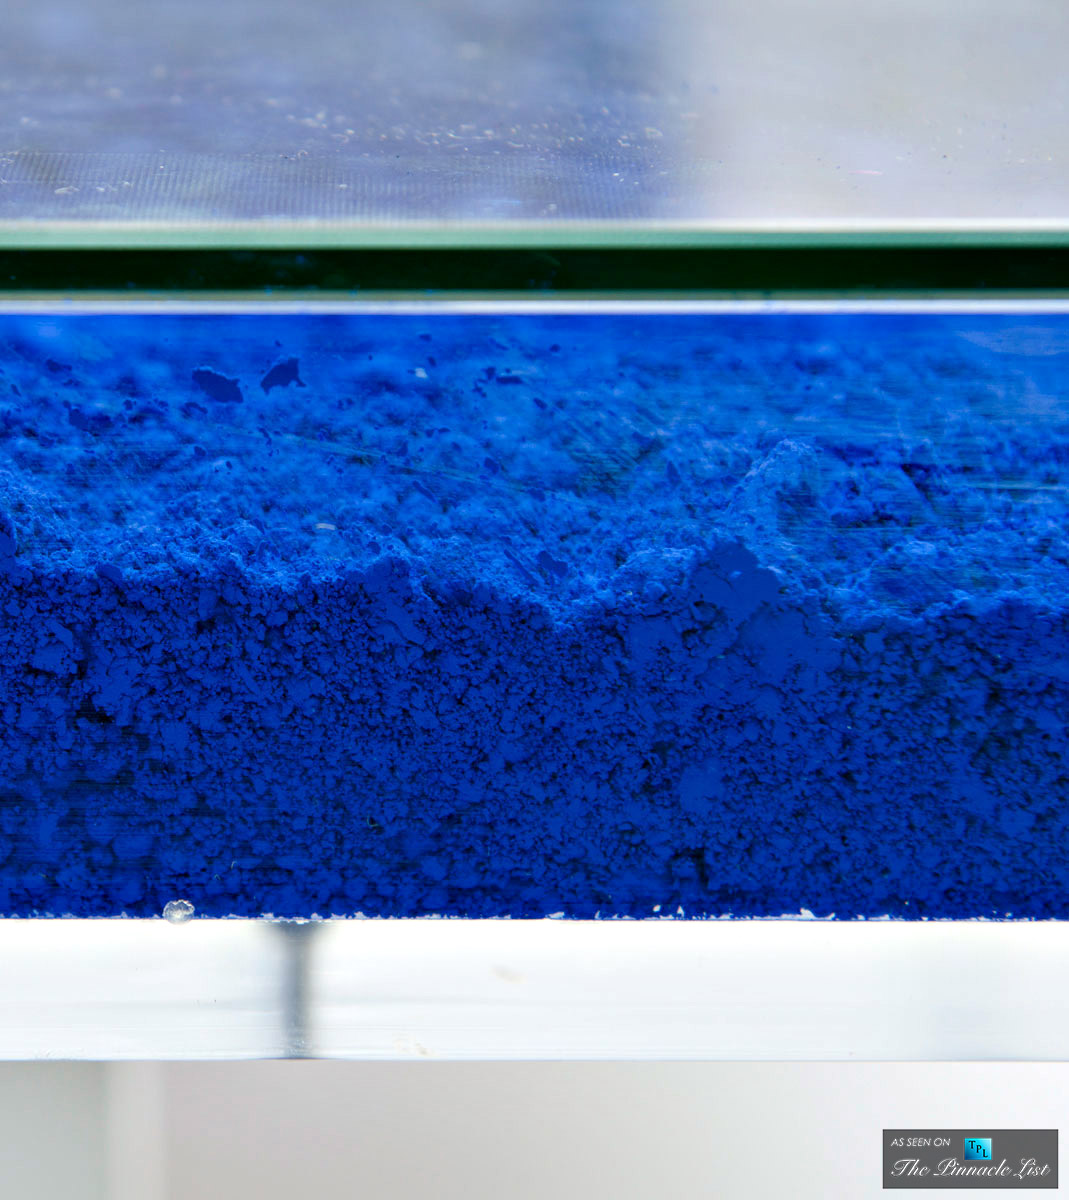 Contemporary Art as Modern Luxury Furniture - Spotlighting the Yves Klein Table of 1963